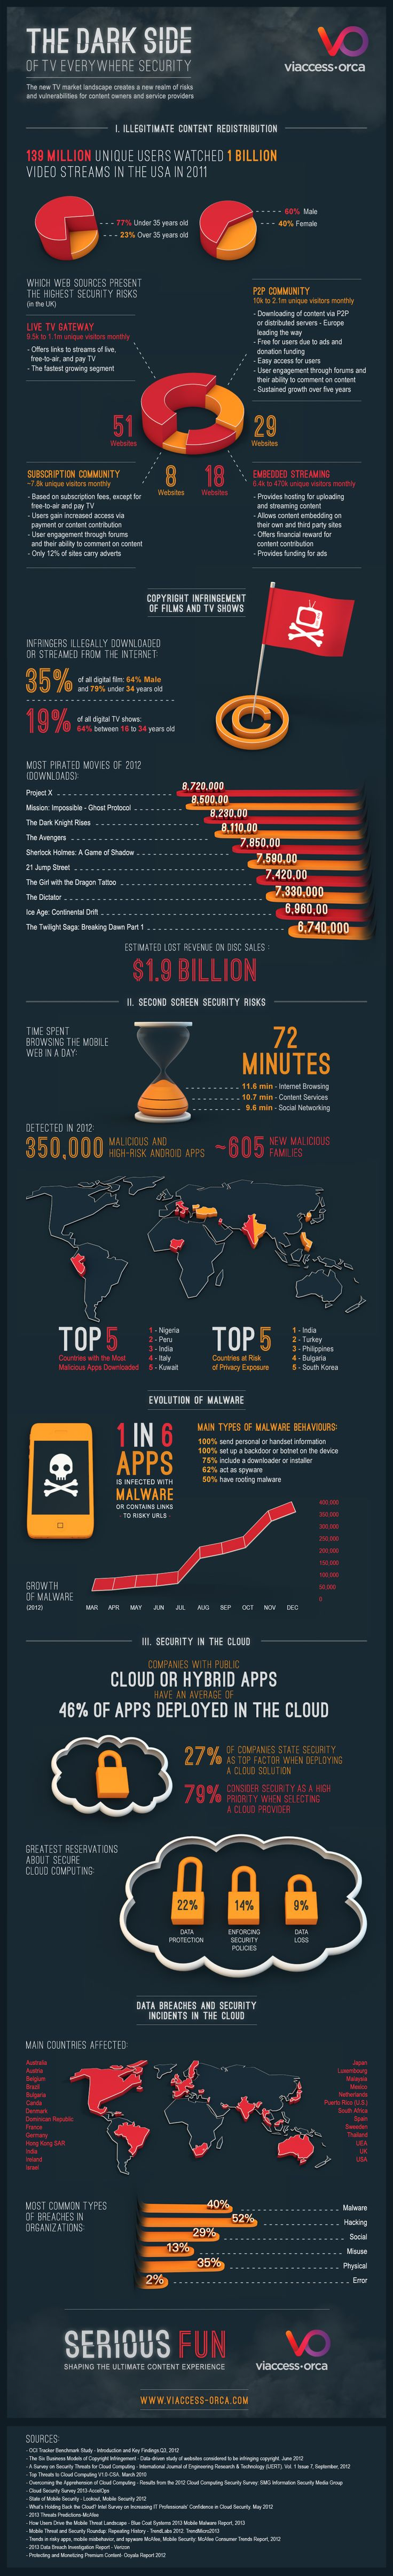 The Dark Side of TVE Security #infographic